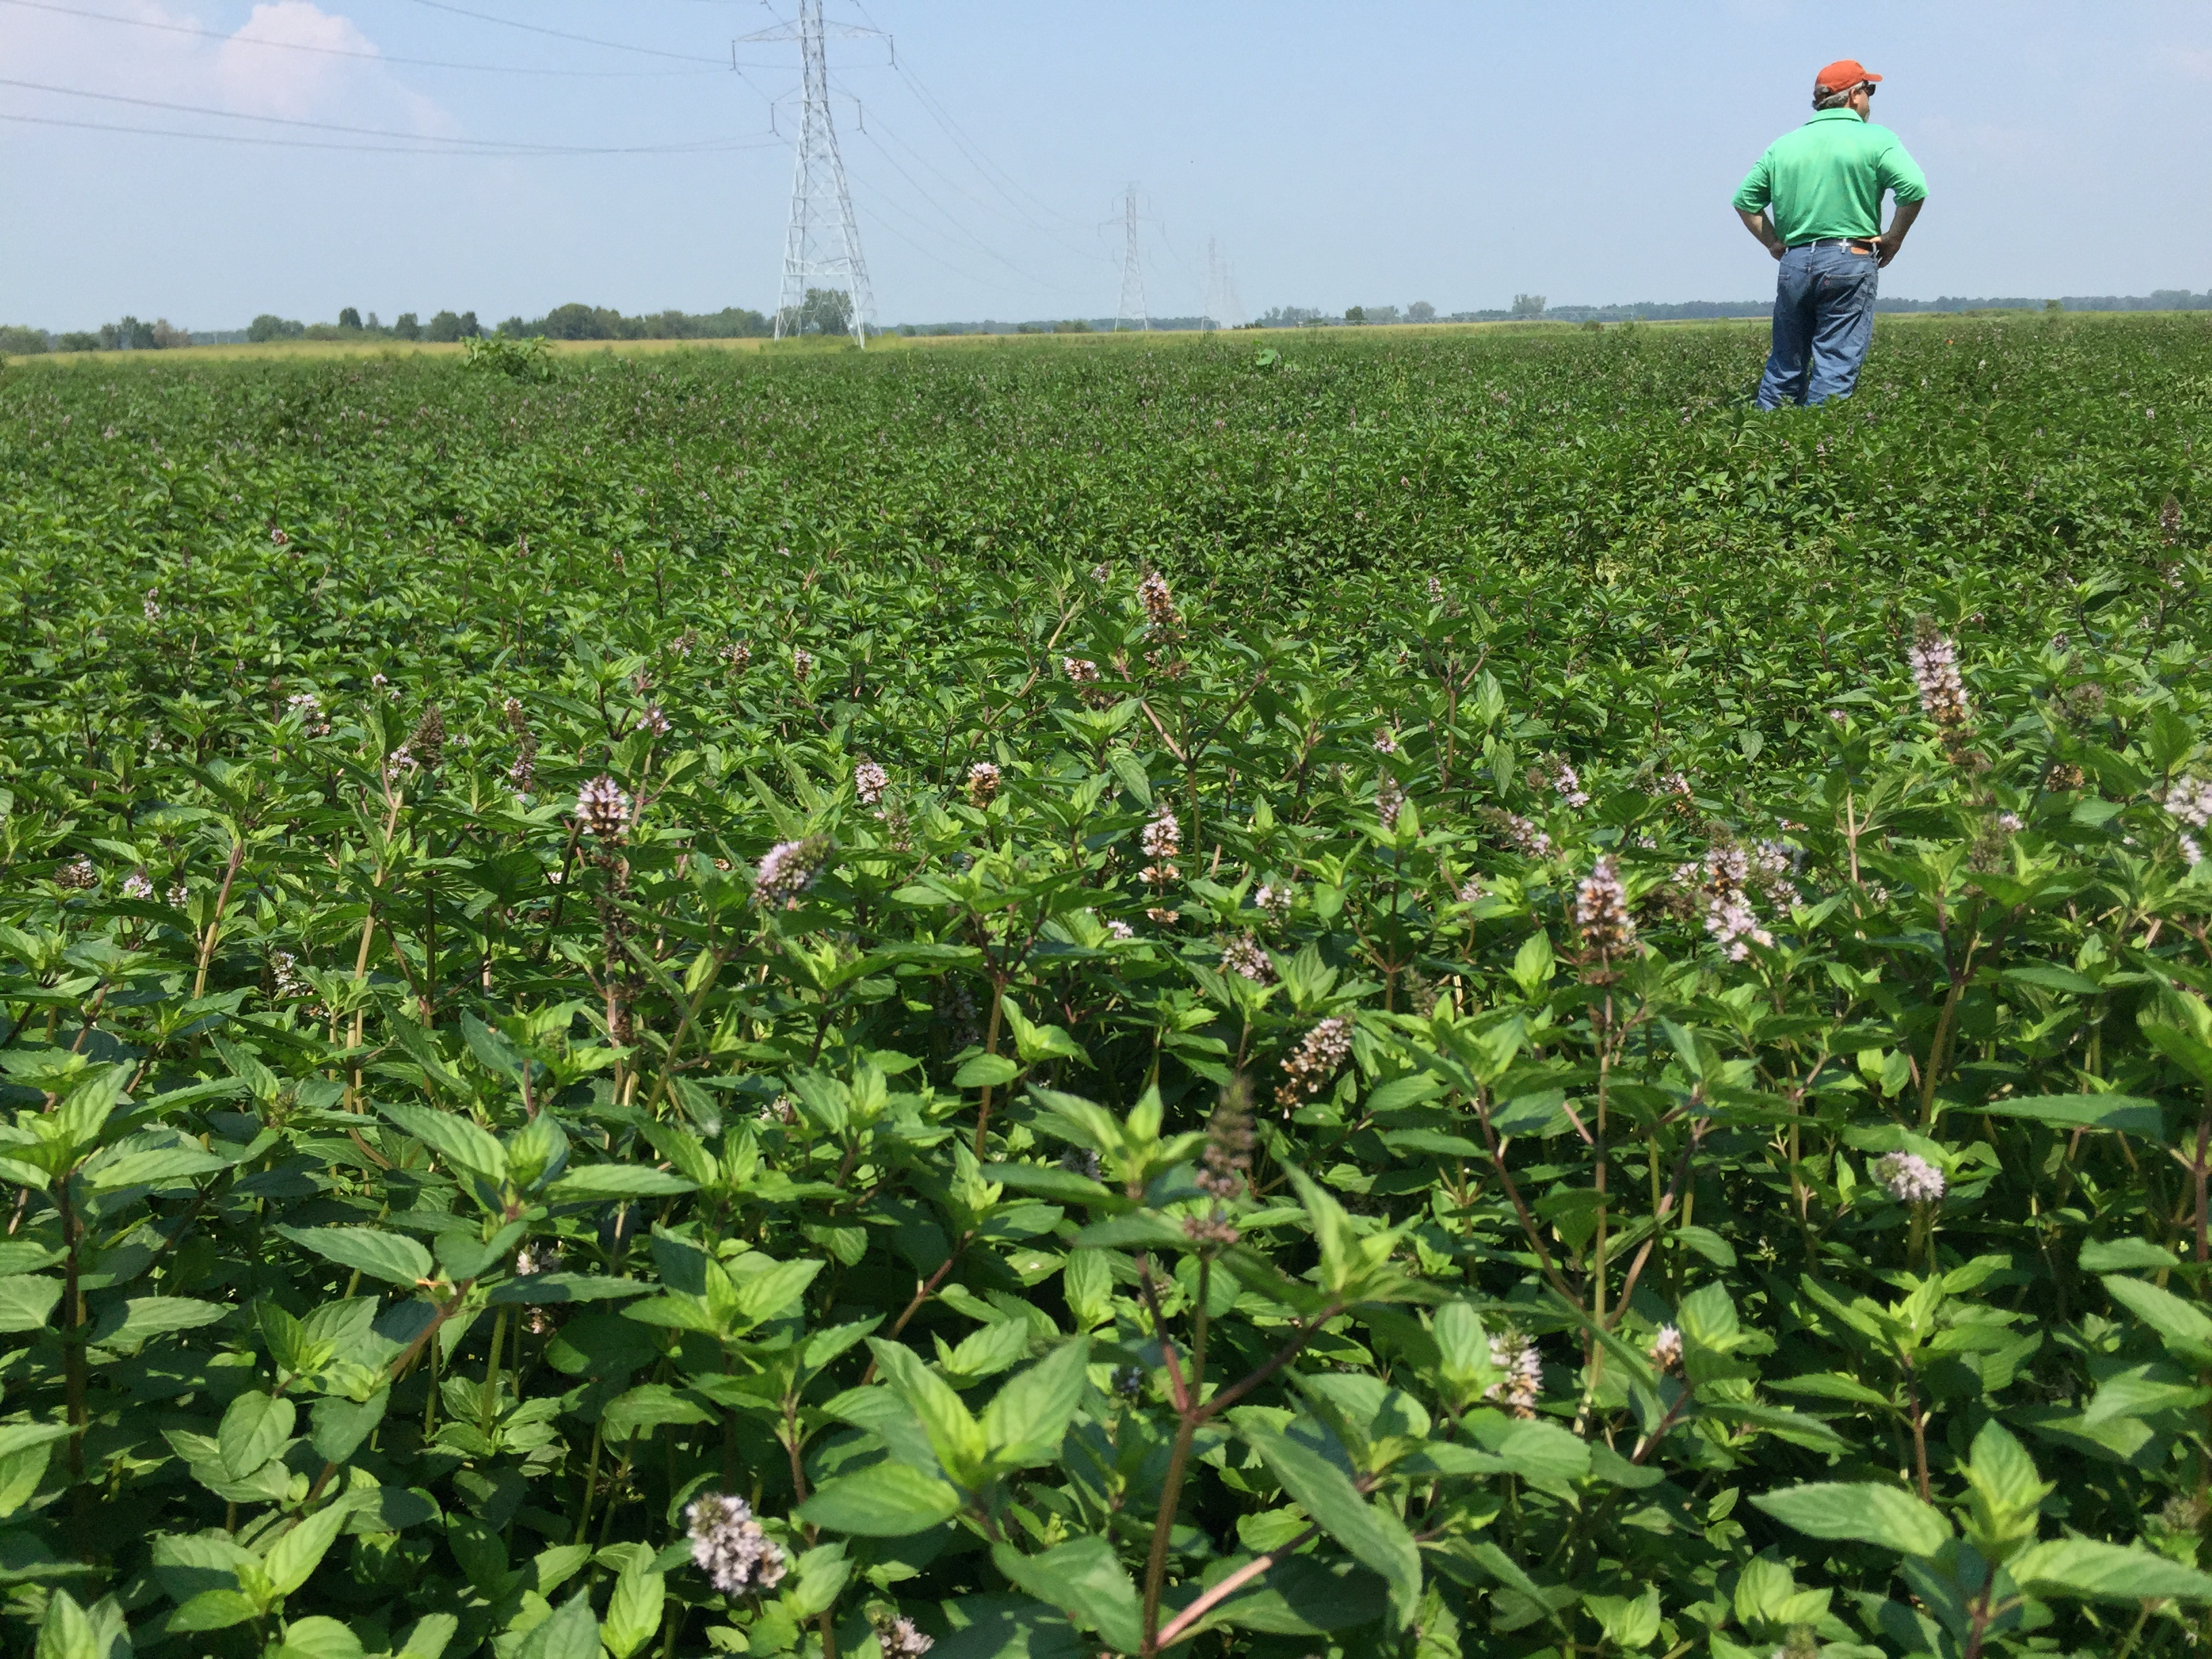 Rob Brown, CEO/Owner, surveying the Midwest USA mint field.